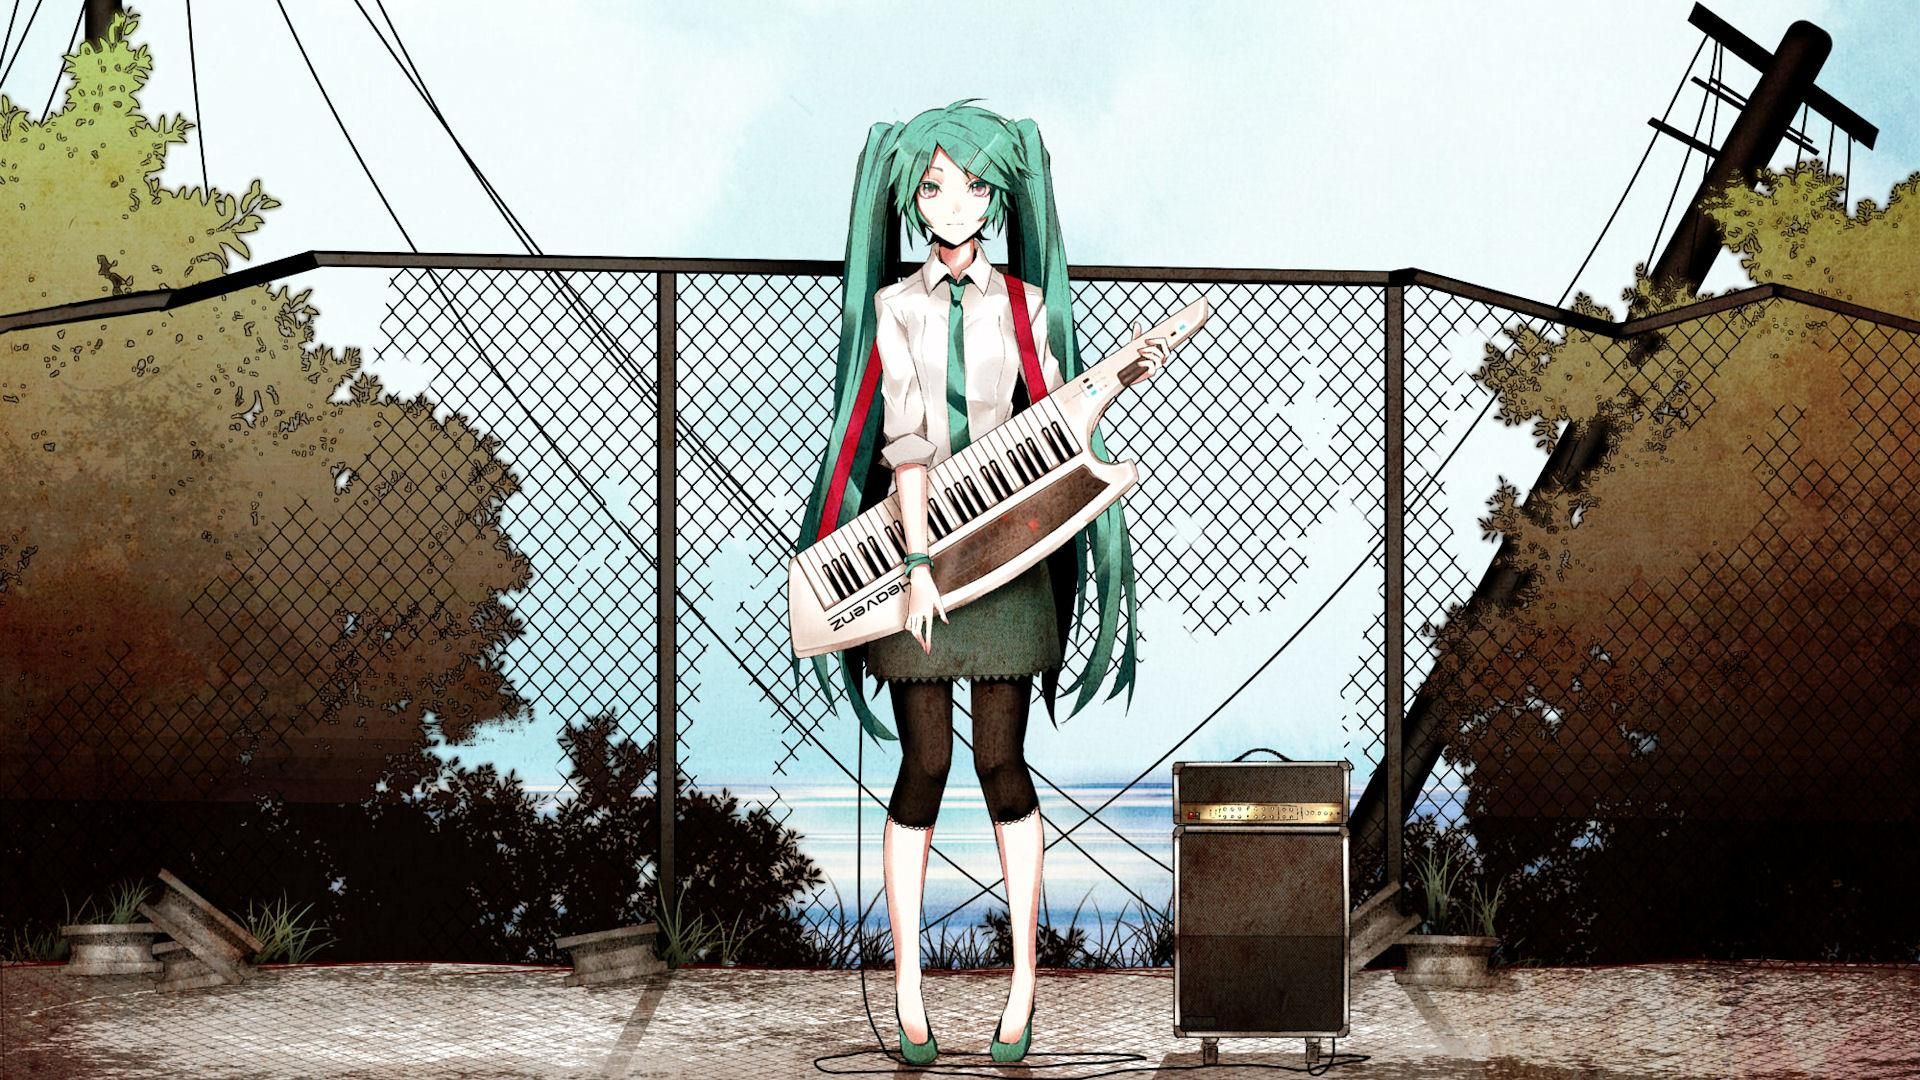 Anime Girl With Instrument HD Wallpaper | 1920x1080 | ID:30595 ...